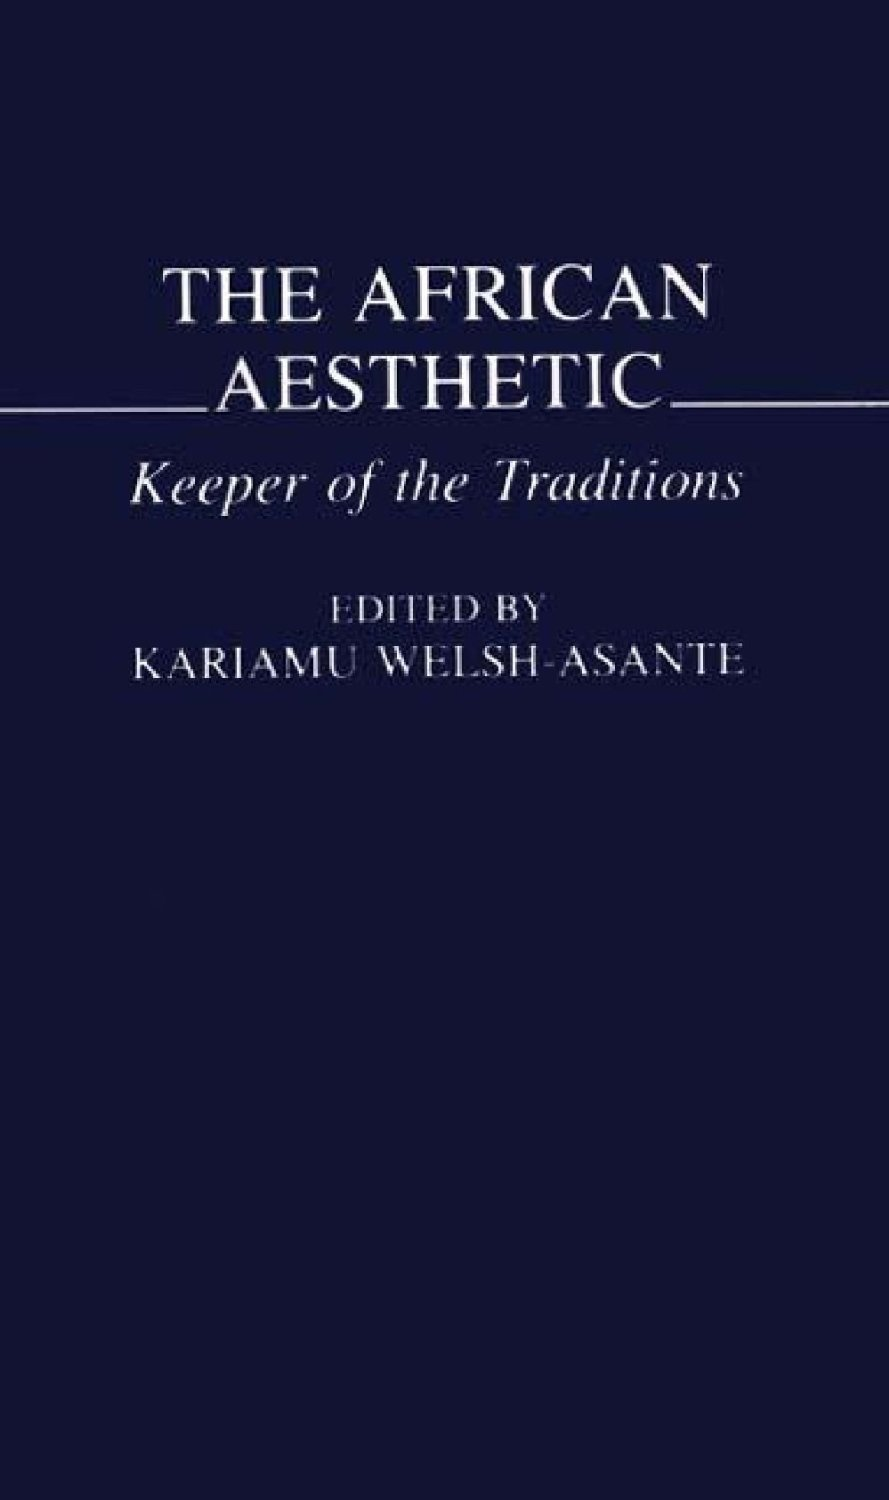 THE AFRICAN AESTHETIC: KEEPER OF THE TRADITION